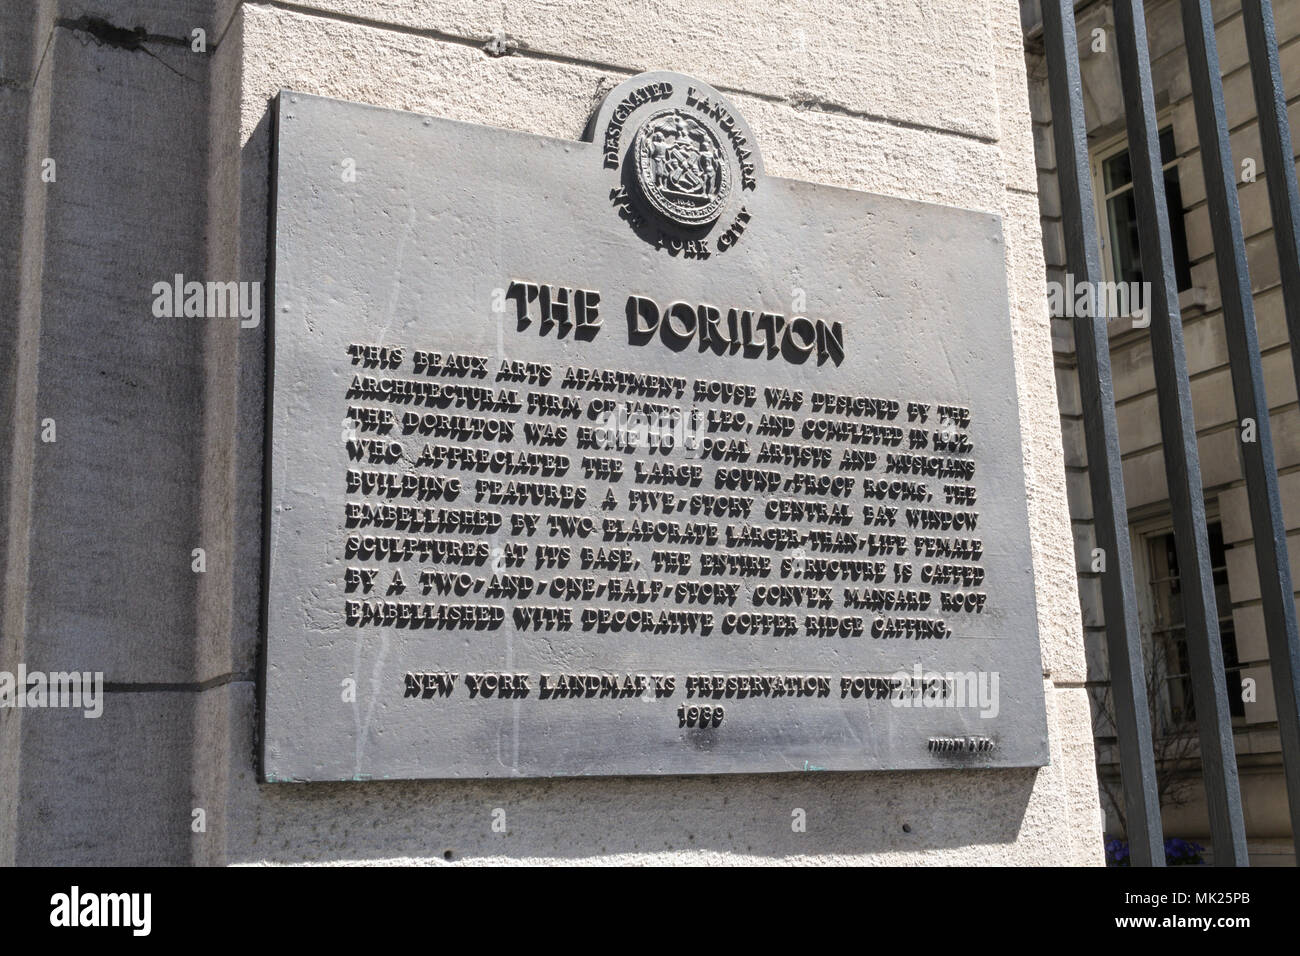 The Dorilton is an Historic Beaux-Arts Apartment House on the Upper West Side of Manhattan in New York City, USA Stock Photo